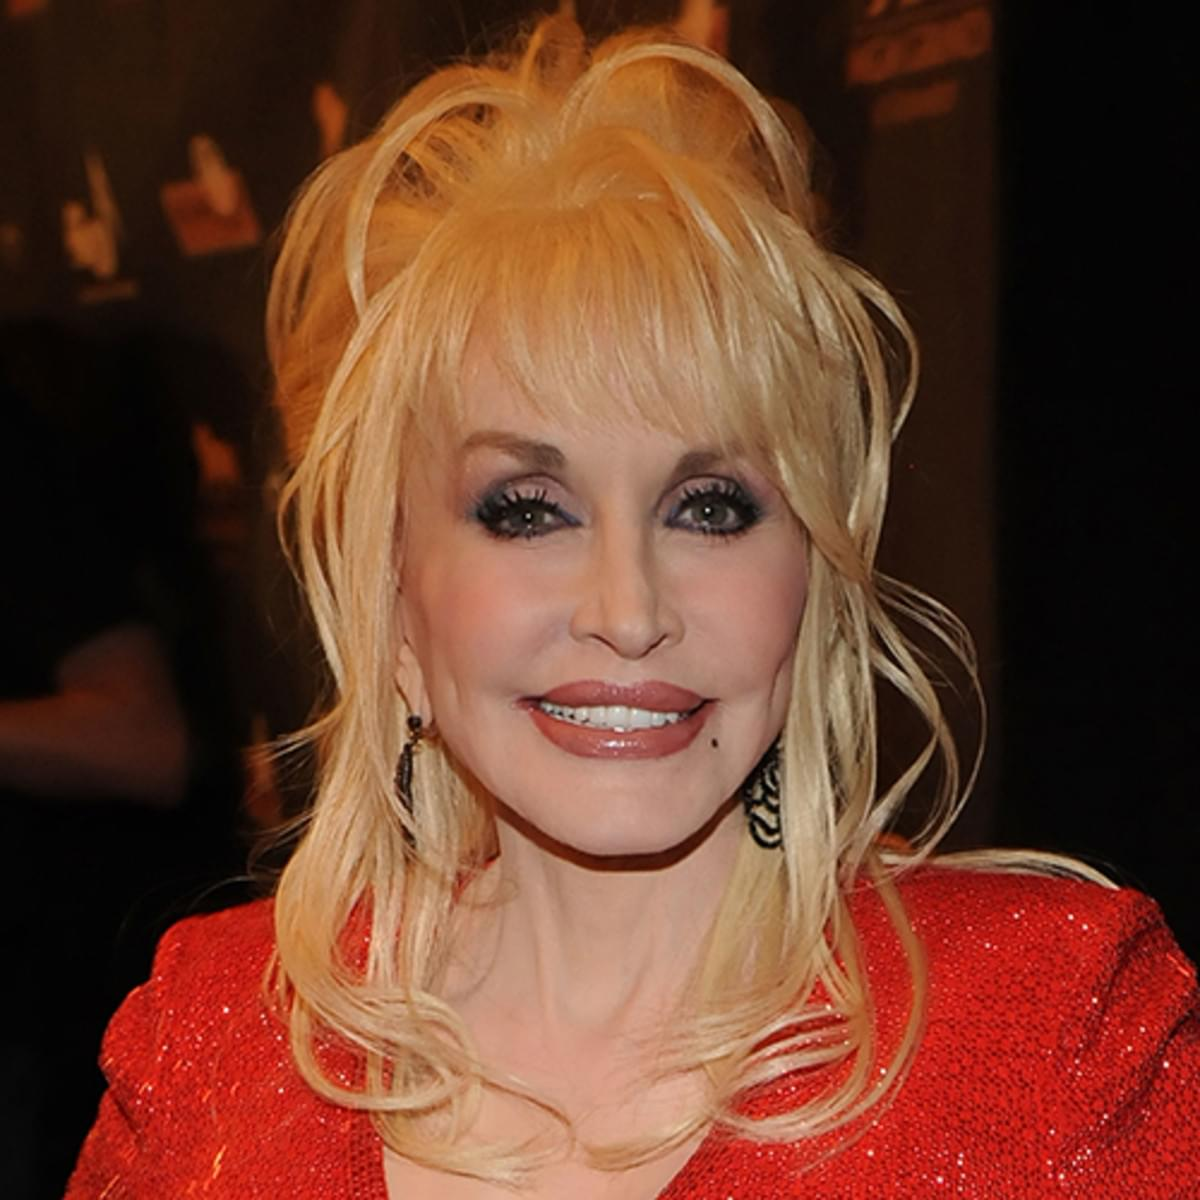 Dolly Parton Issues Statement Asking the State Legislature to Remove Bill to Erect a Statue of Her on Capitol Grounds